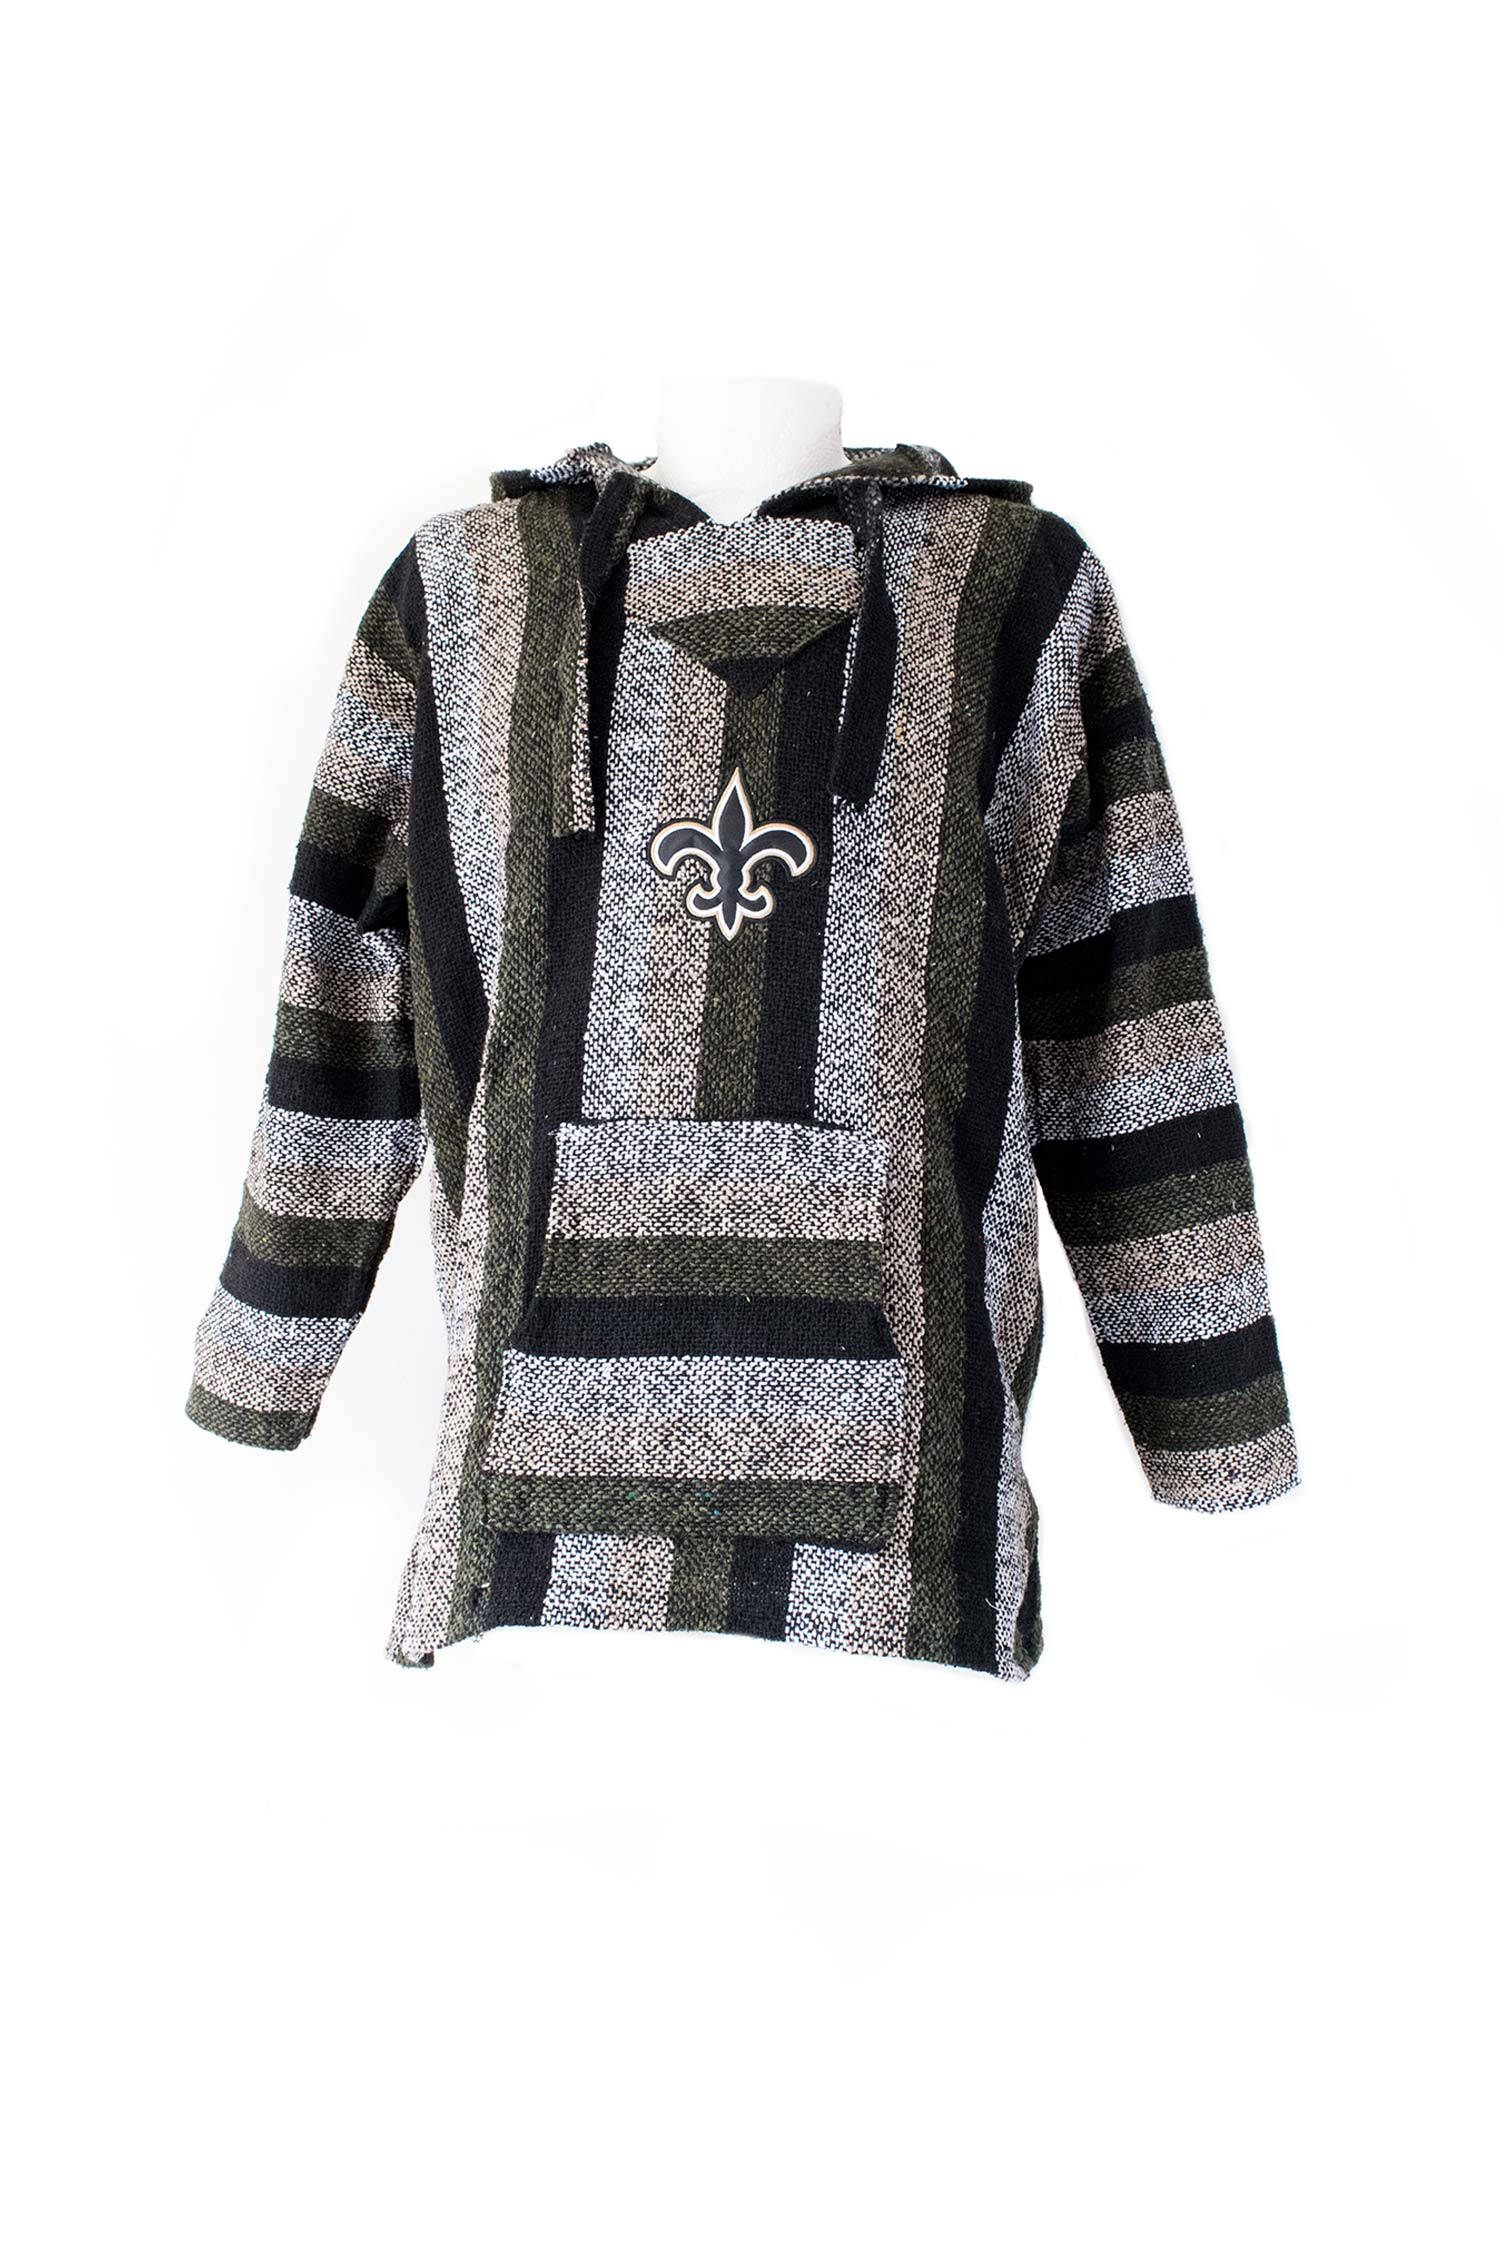 timeless design 8bbae 22586 NEW ORLEANS SAINTS hoodie pullover sweater